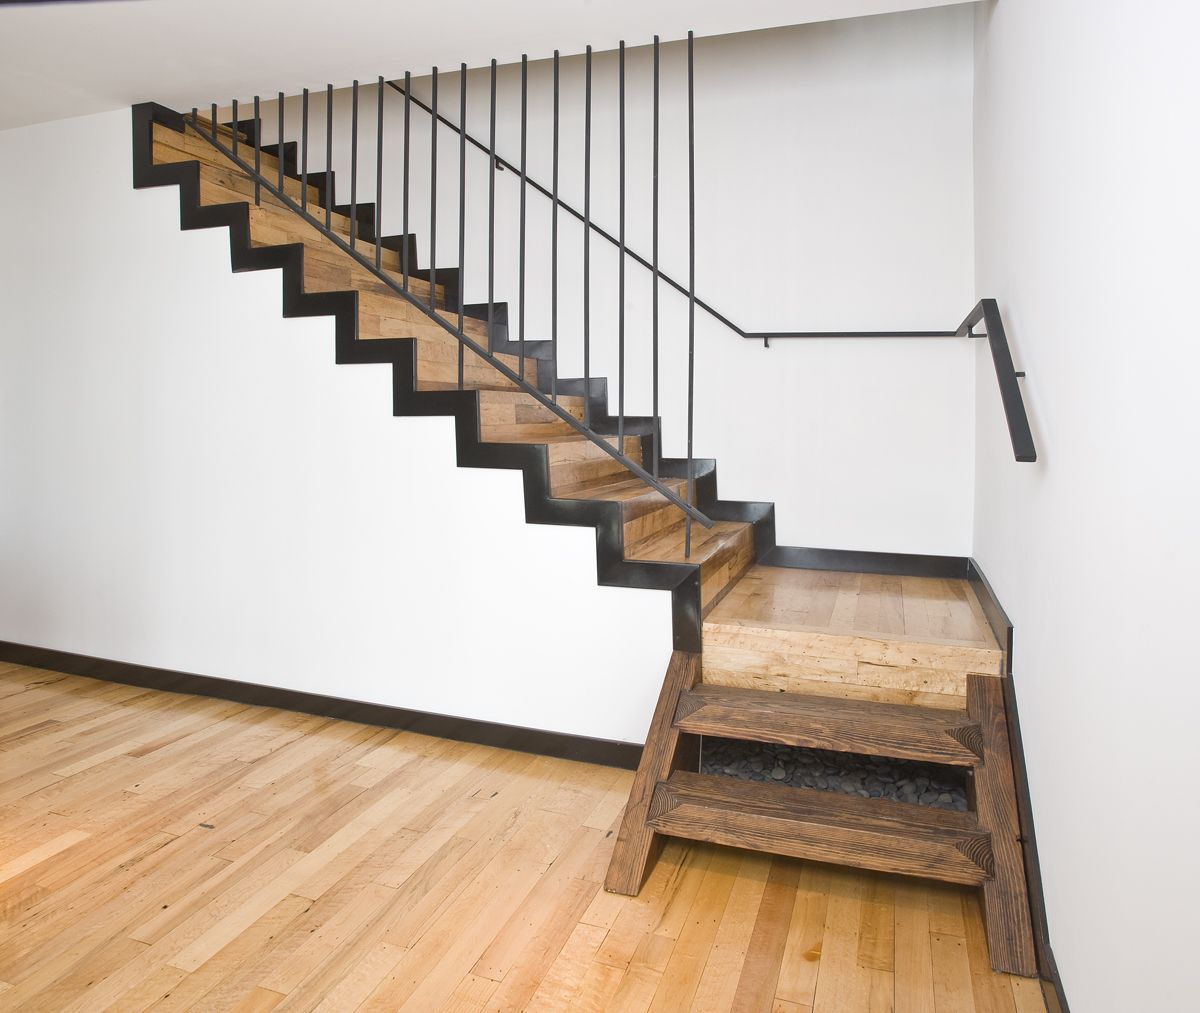 Basement Stairs Design: Elegant Staircase Appropiate For Design New Home With